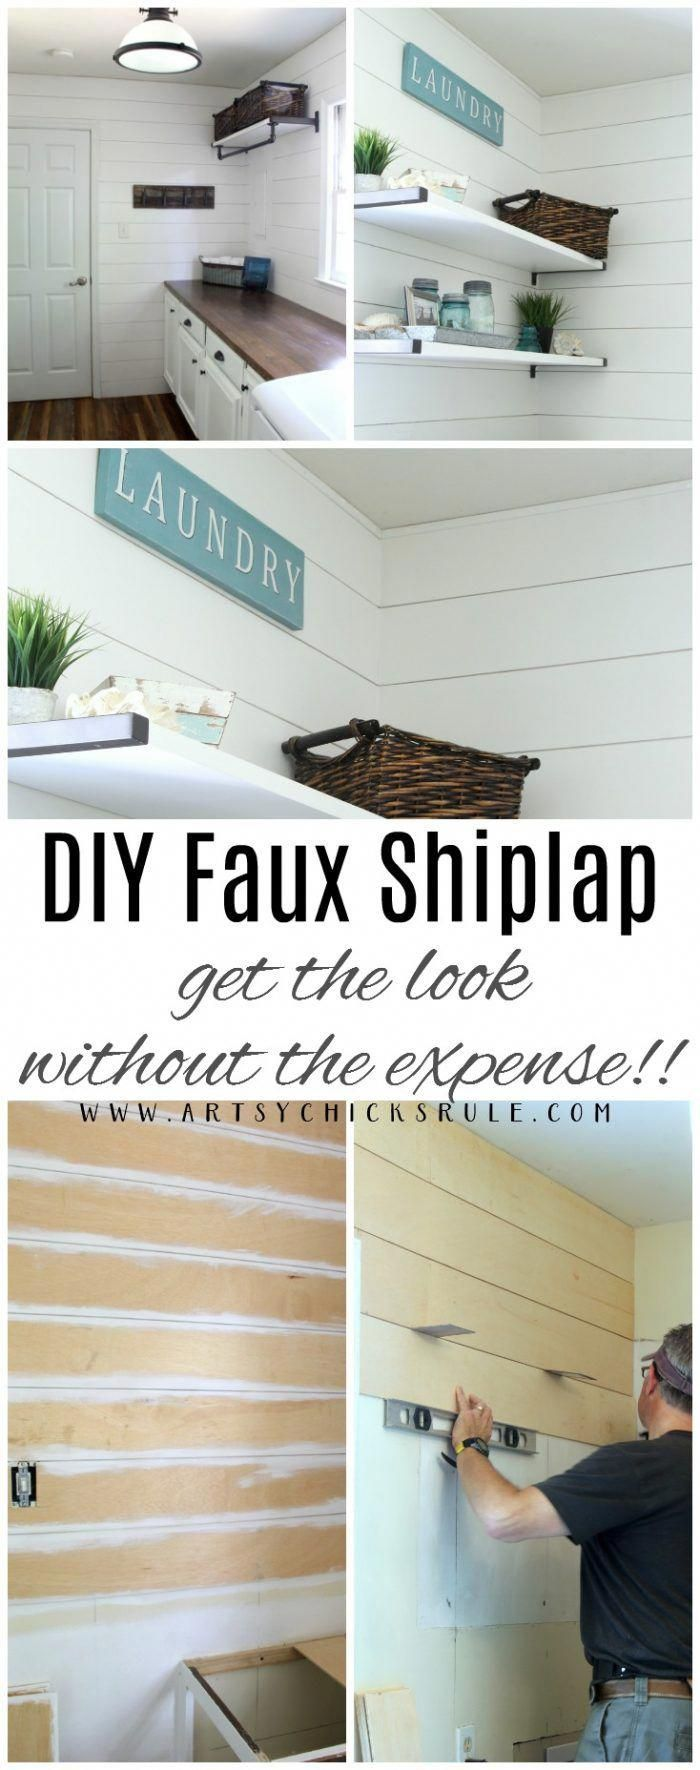 DIY Faux Shiplap (get the look without the expense!) - Artsy Chicks Rule®